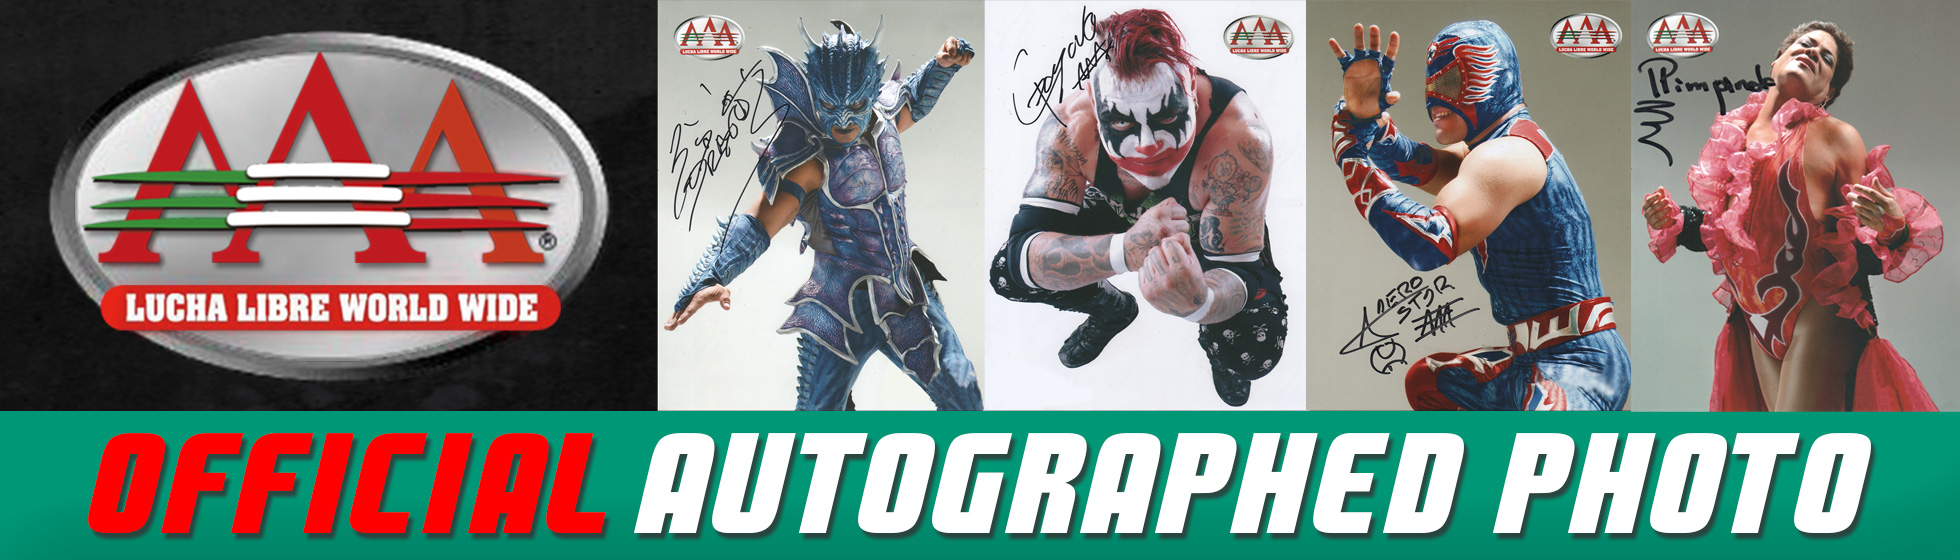 AAA CFFICIAL AUTOGRAPHED PHOTOS